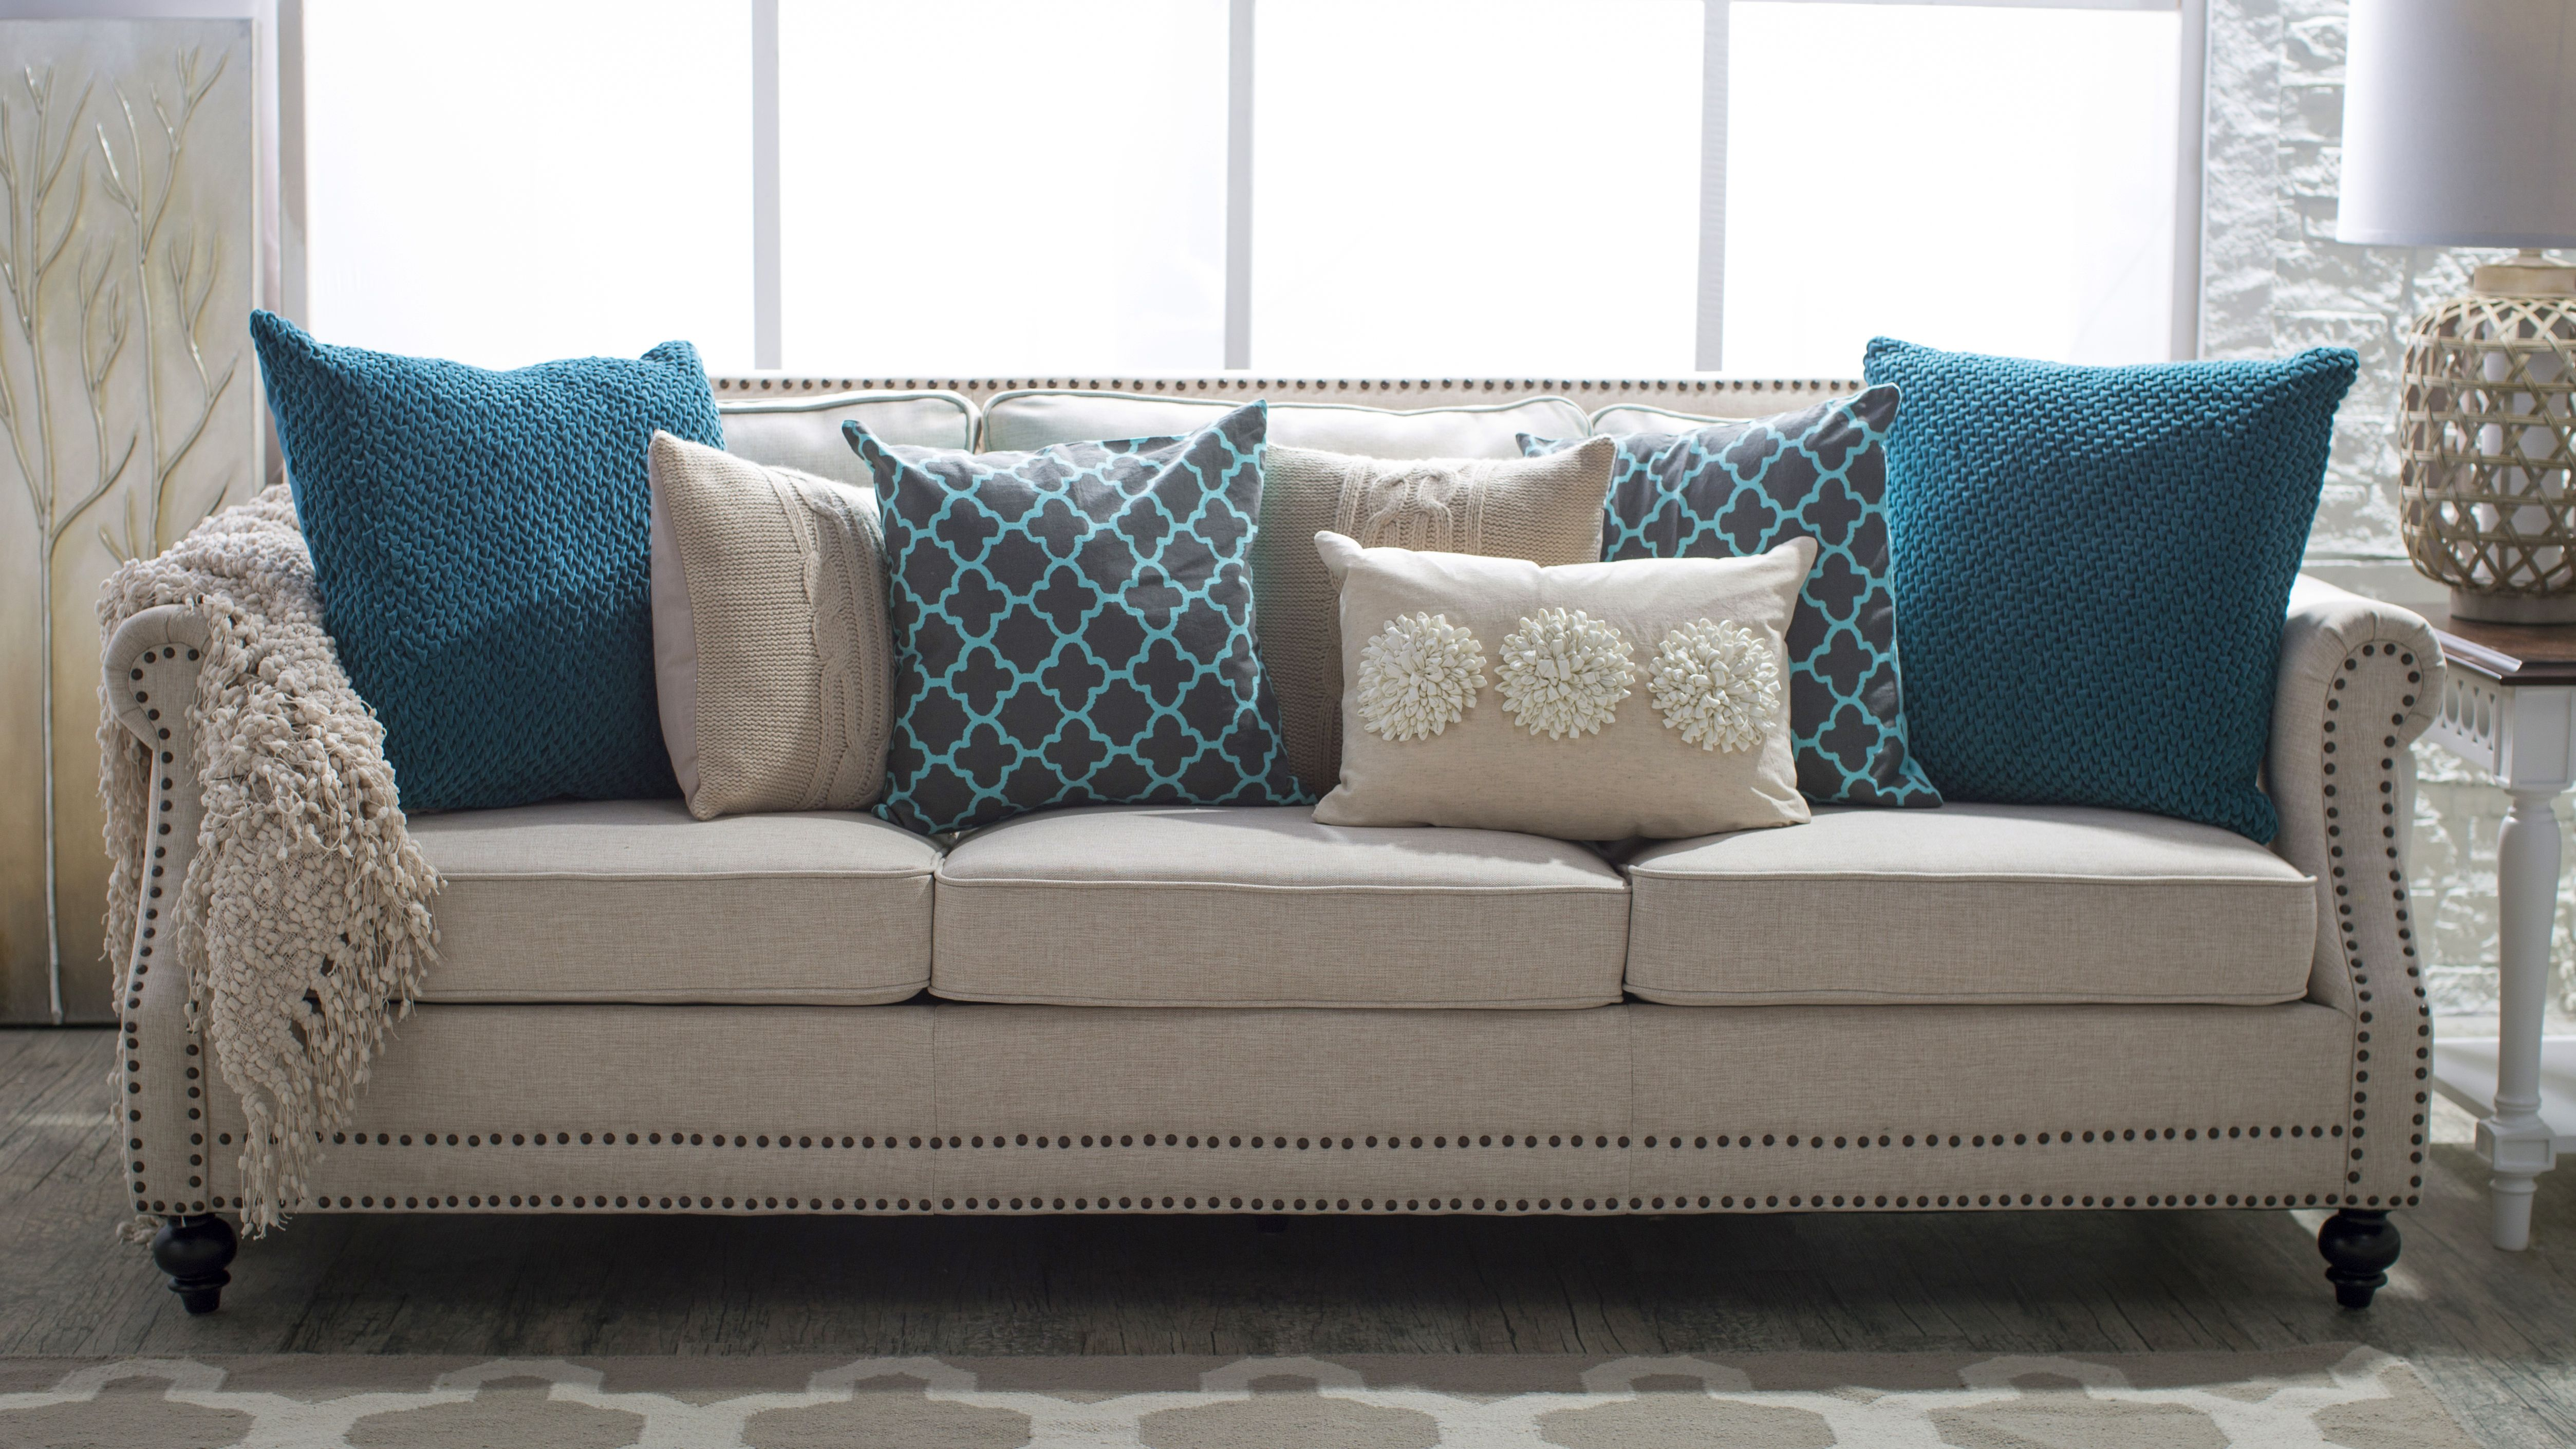 Sofa Throws Retro Teal And Cream Throw Pillows Another Way Of Staying Nuttall And